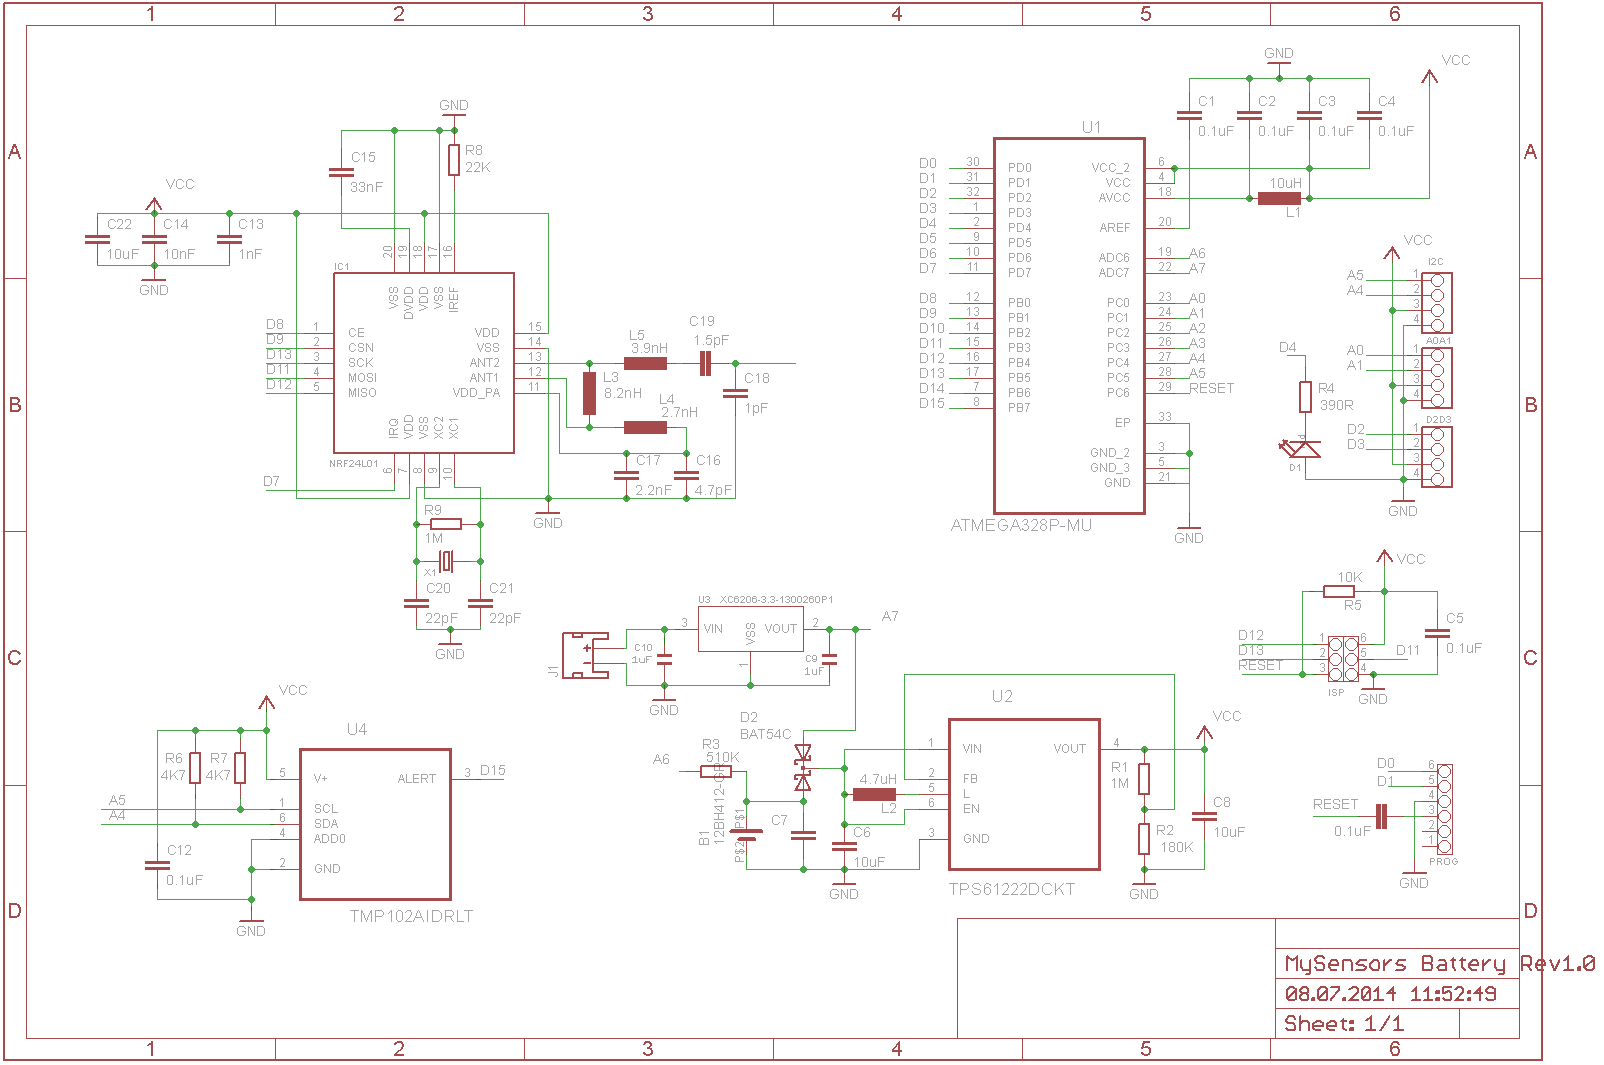 schema mysensors battery rev1.0.png